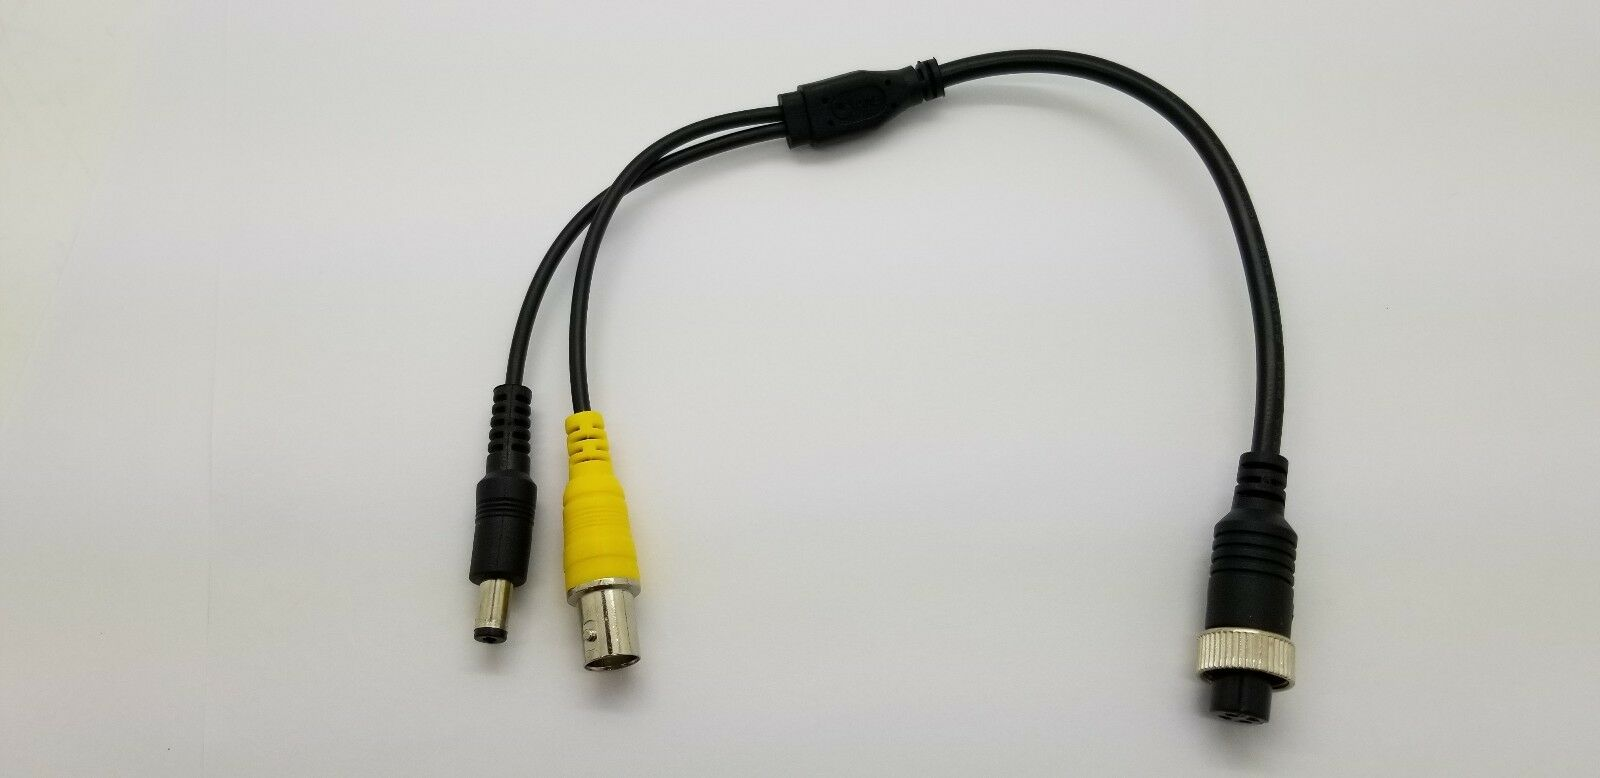 RCA Video Cable Wire for Backup Camera 15M//45FT